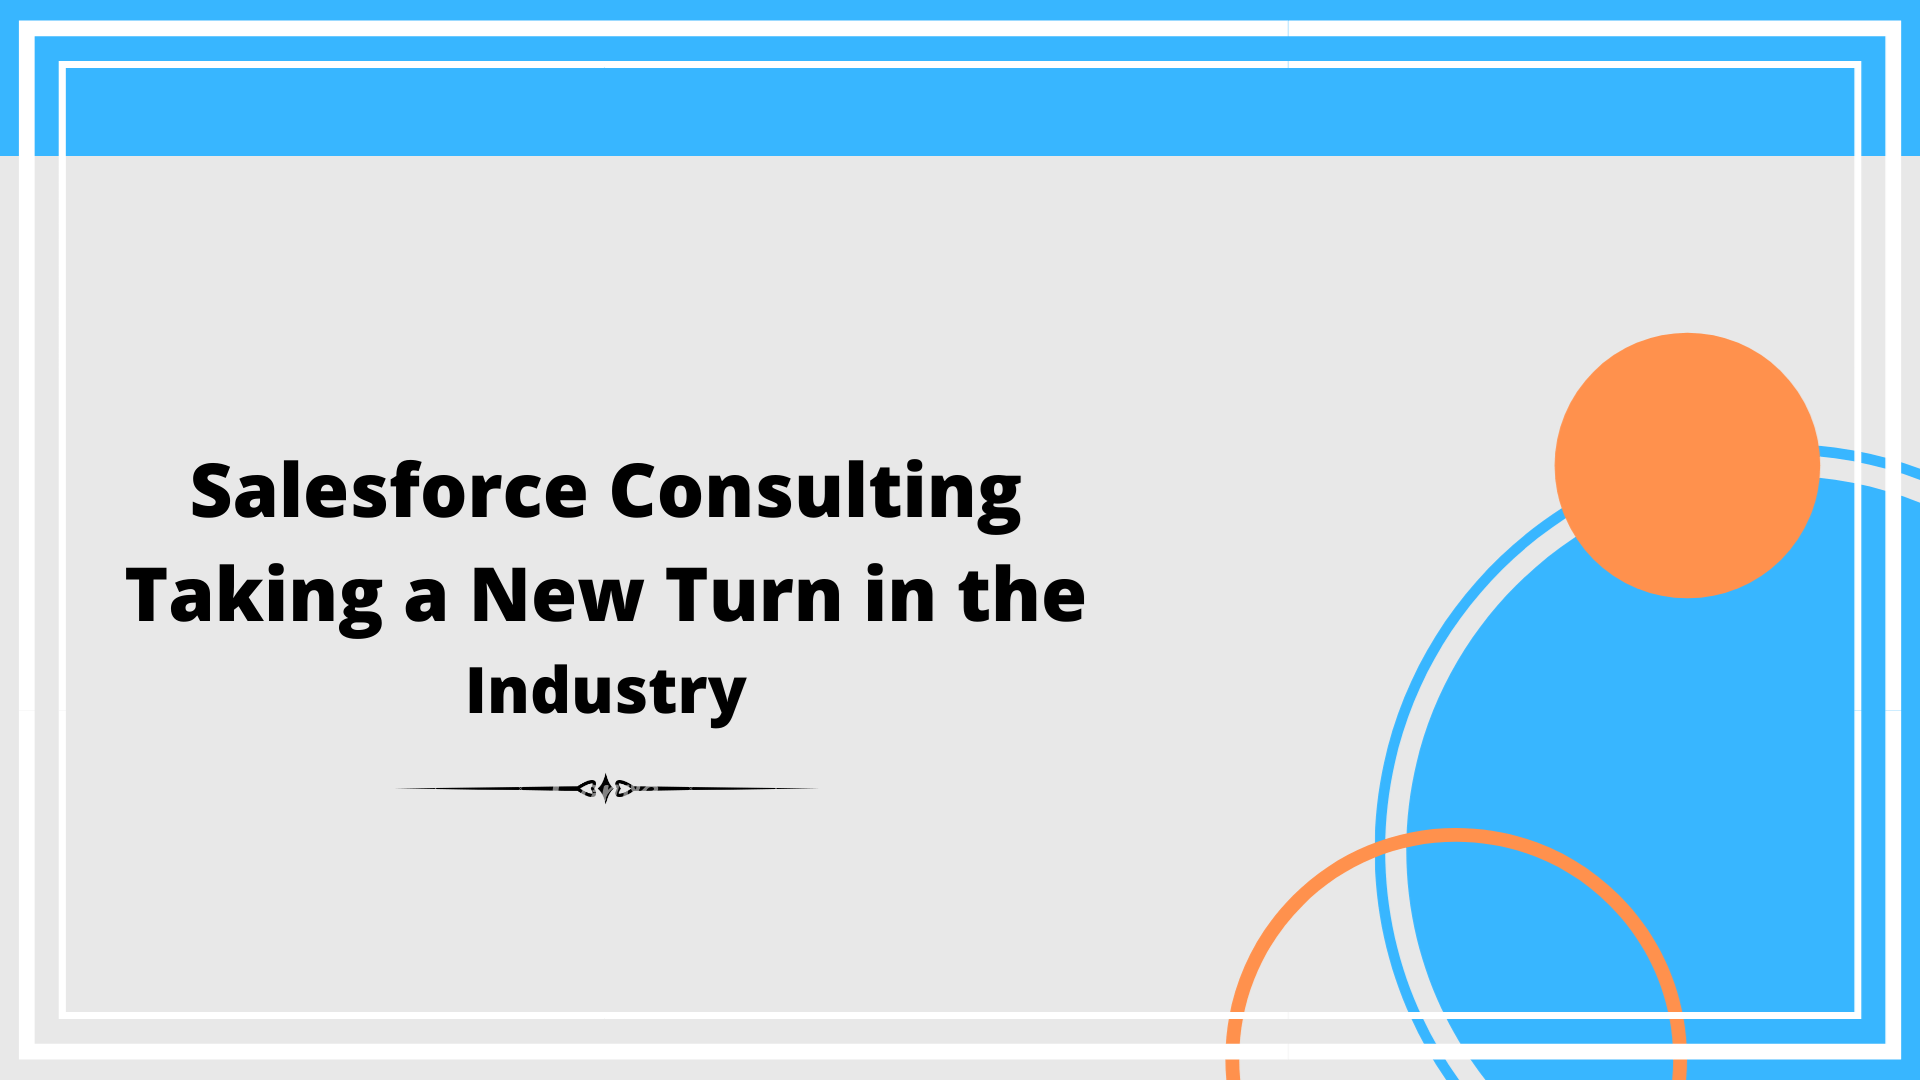 Salesforce Consulting Taking a New Turn in the Industry